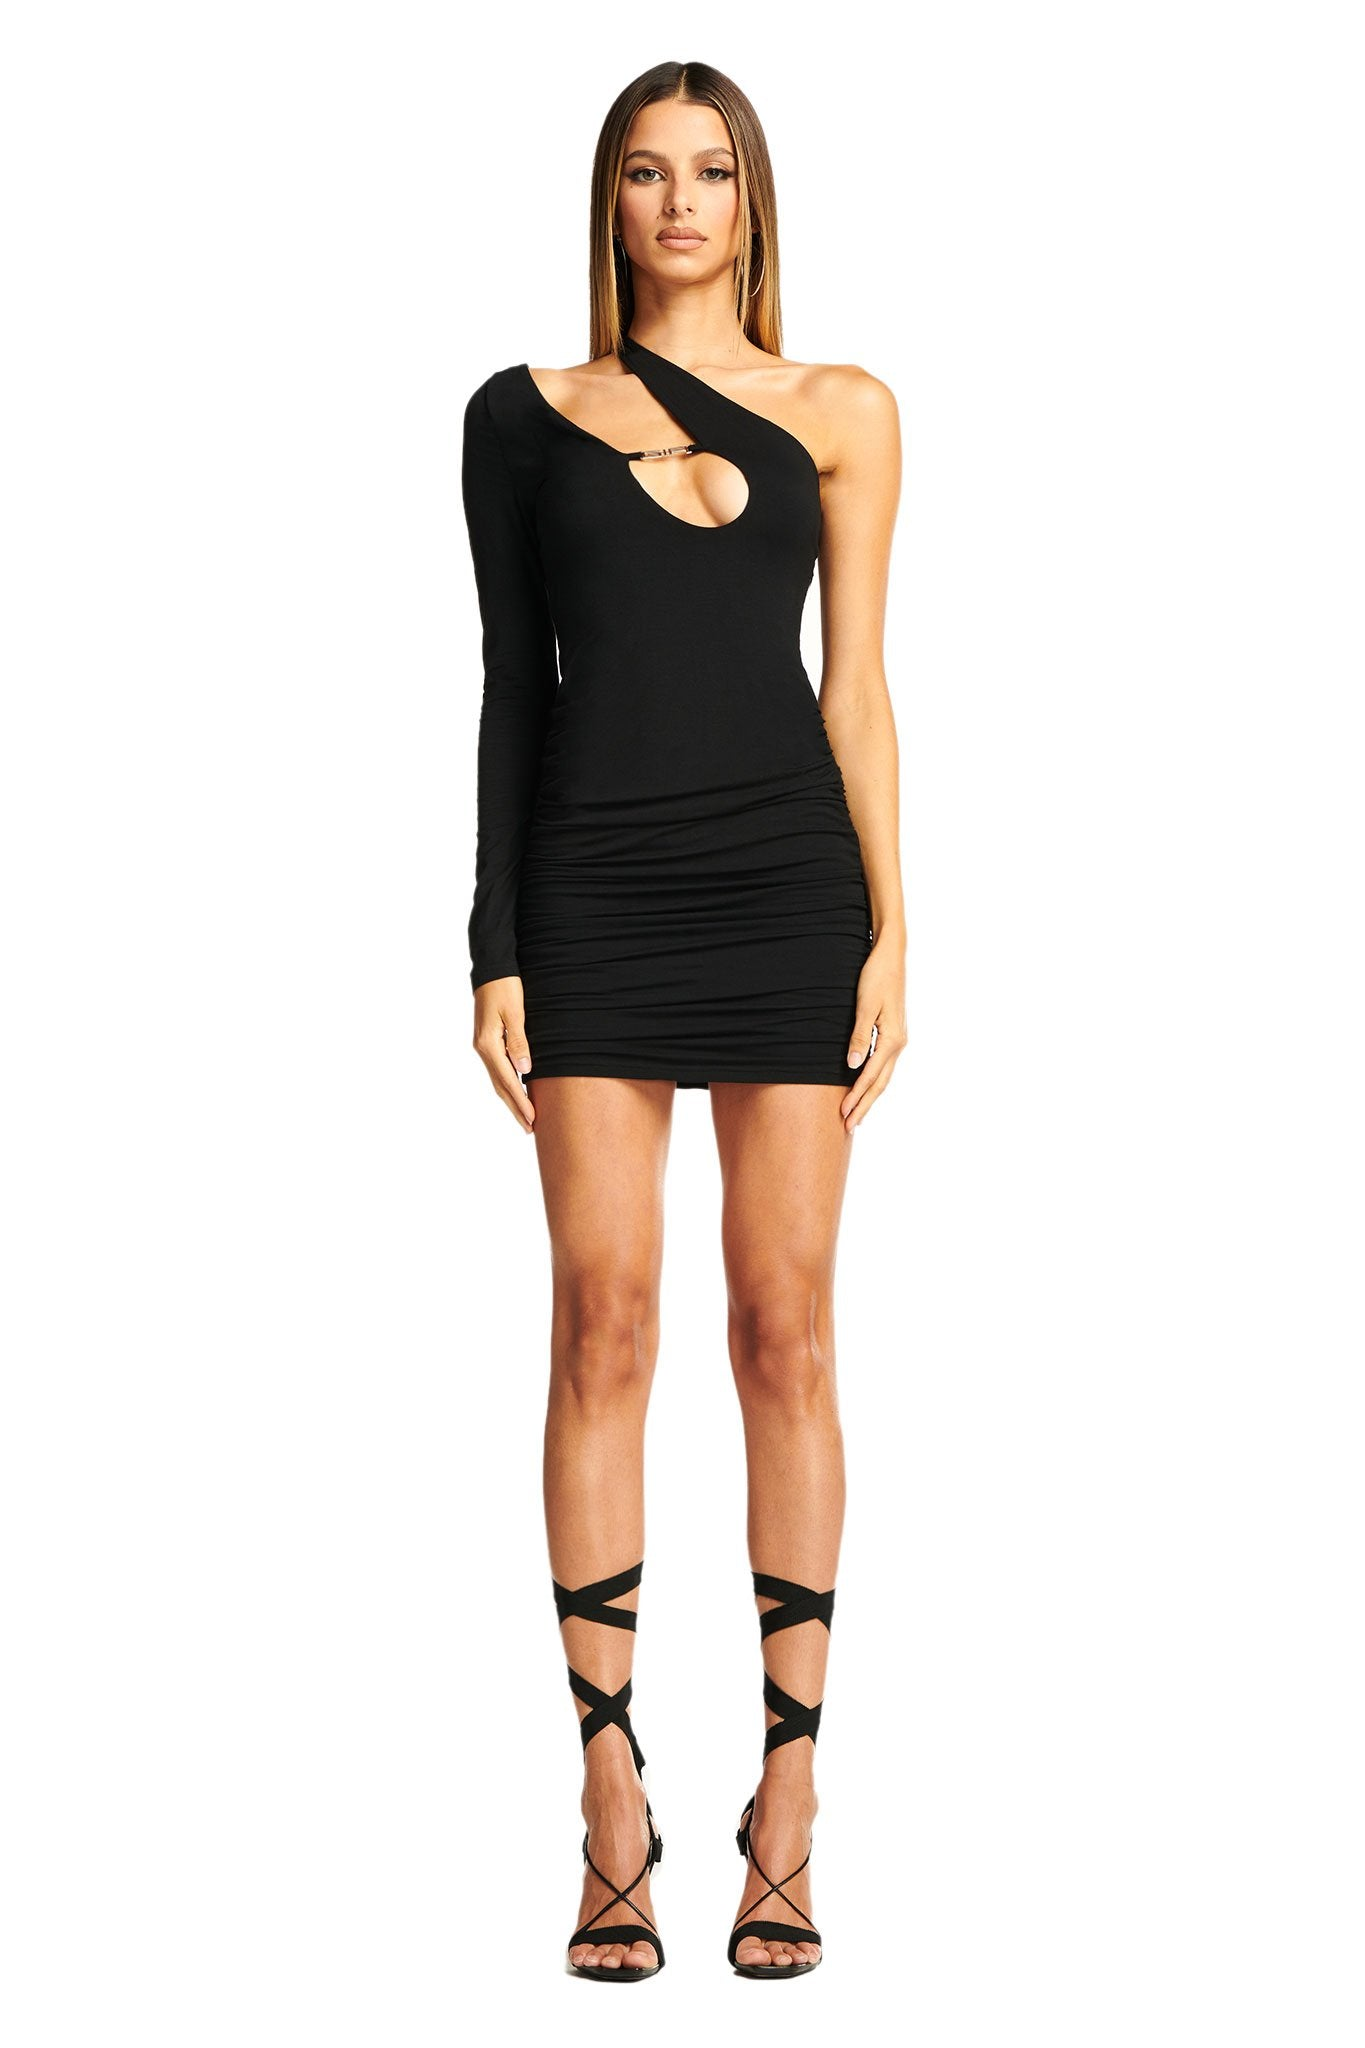 SILENE DRESS - BLACK